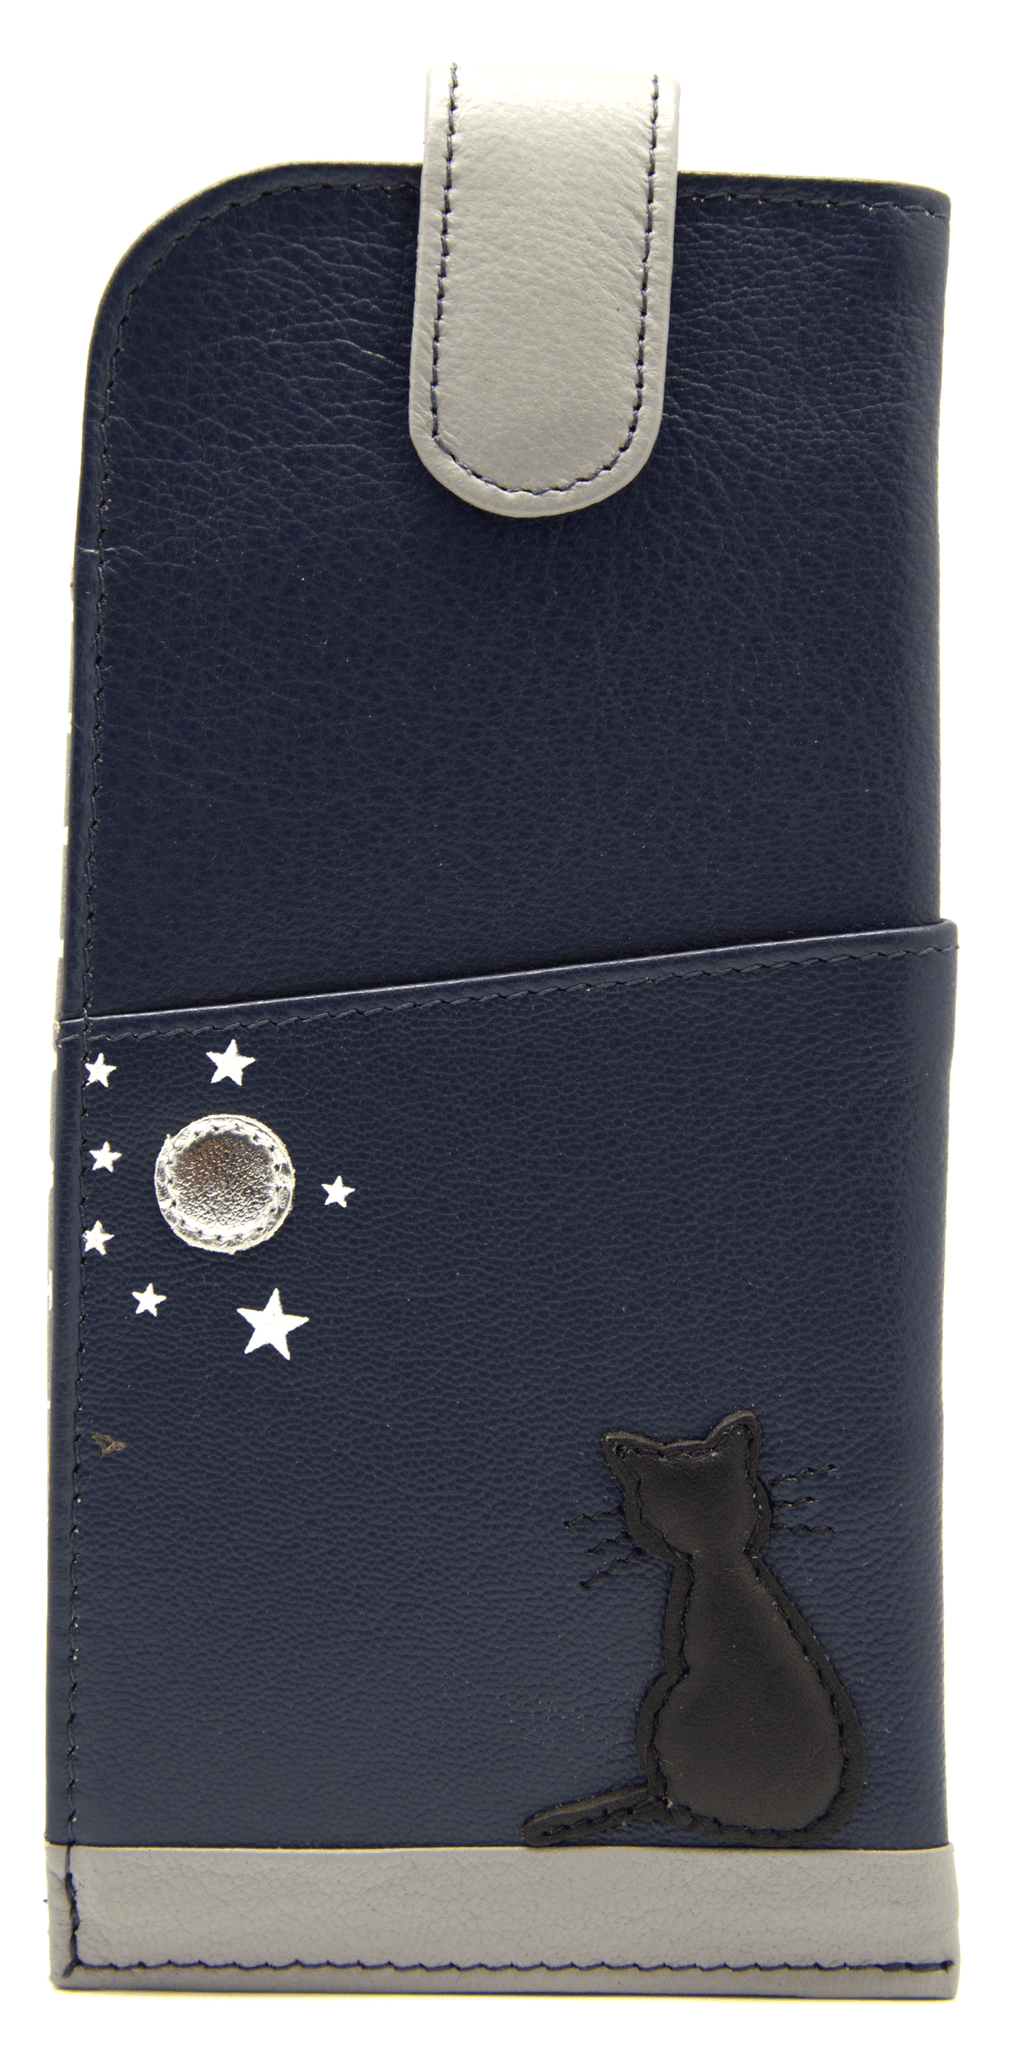 Mala Leather Midnight Black Cat Navy Blue Glasses Case